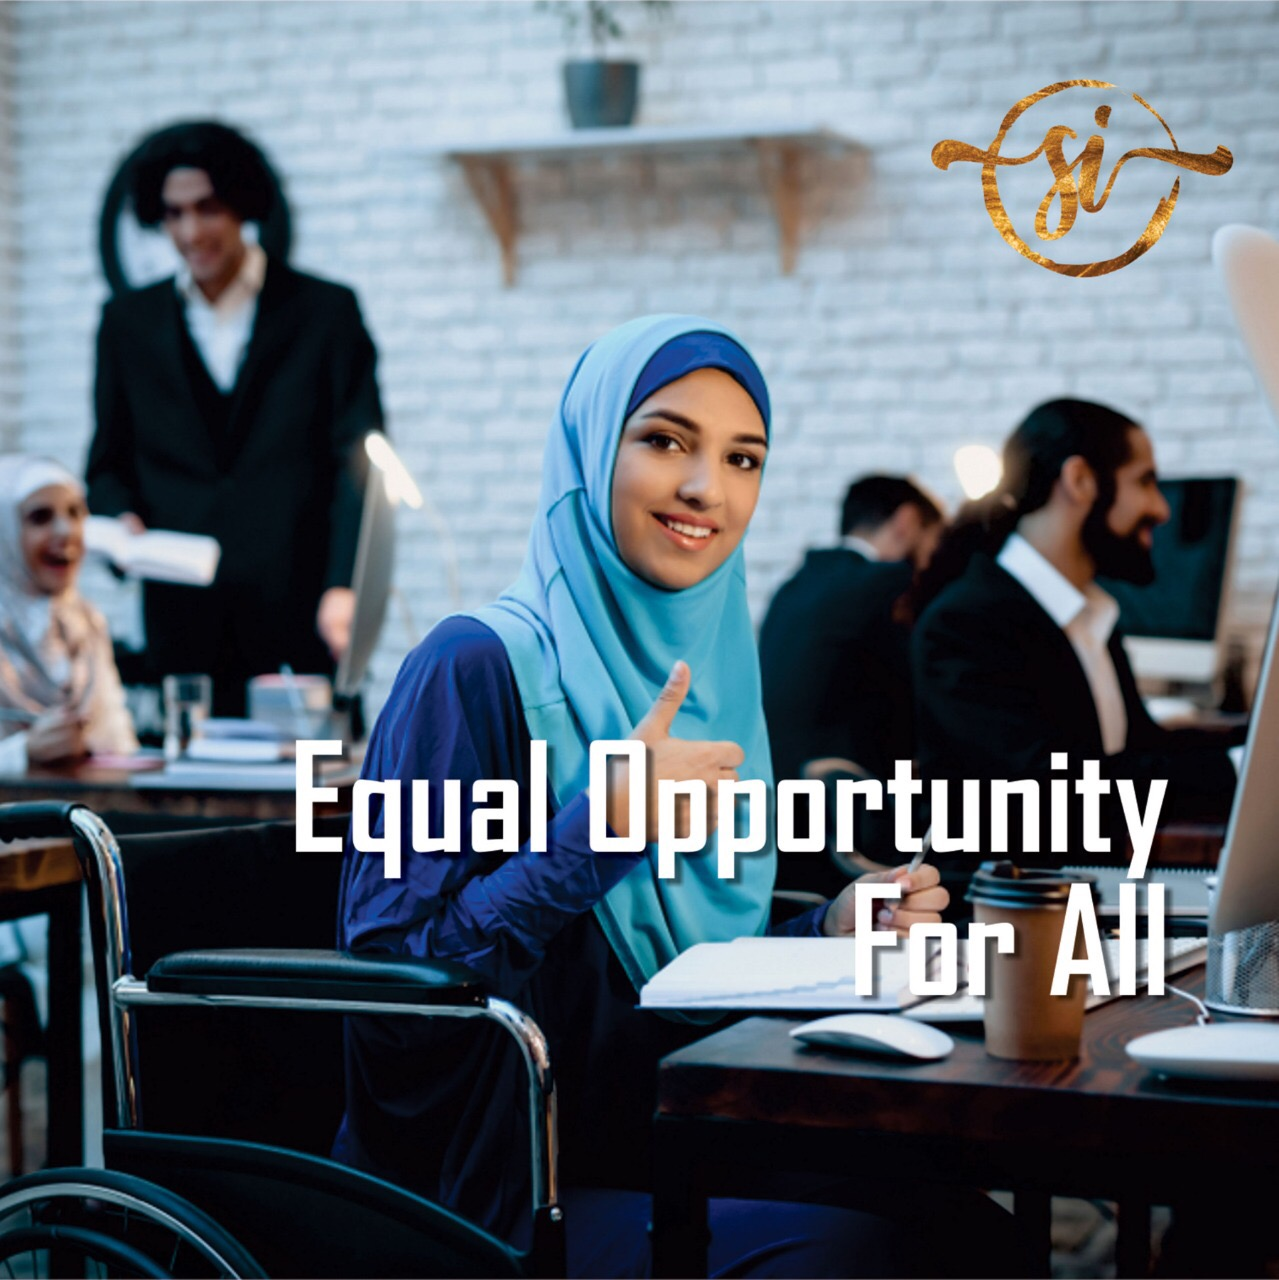 Differently Abled - Equality